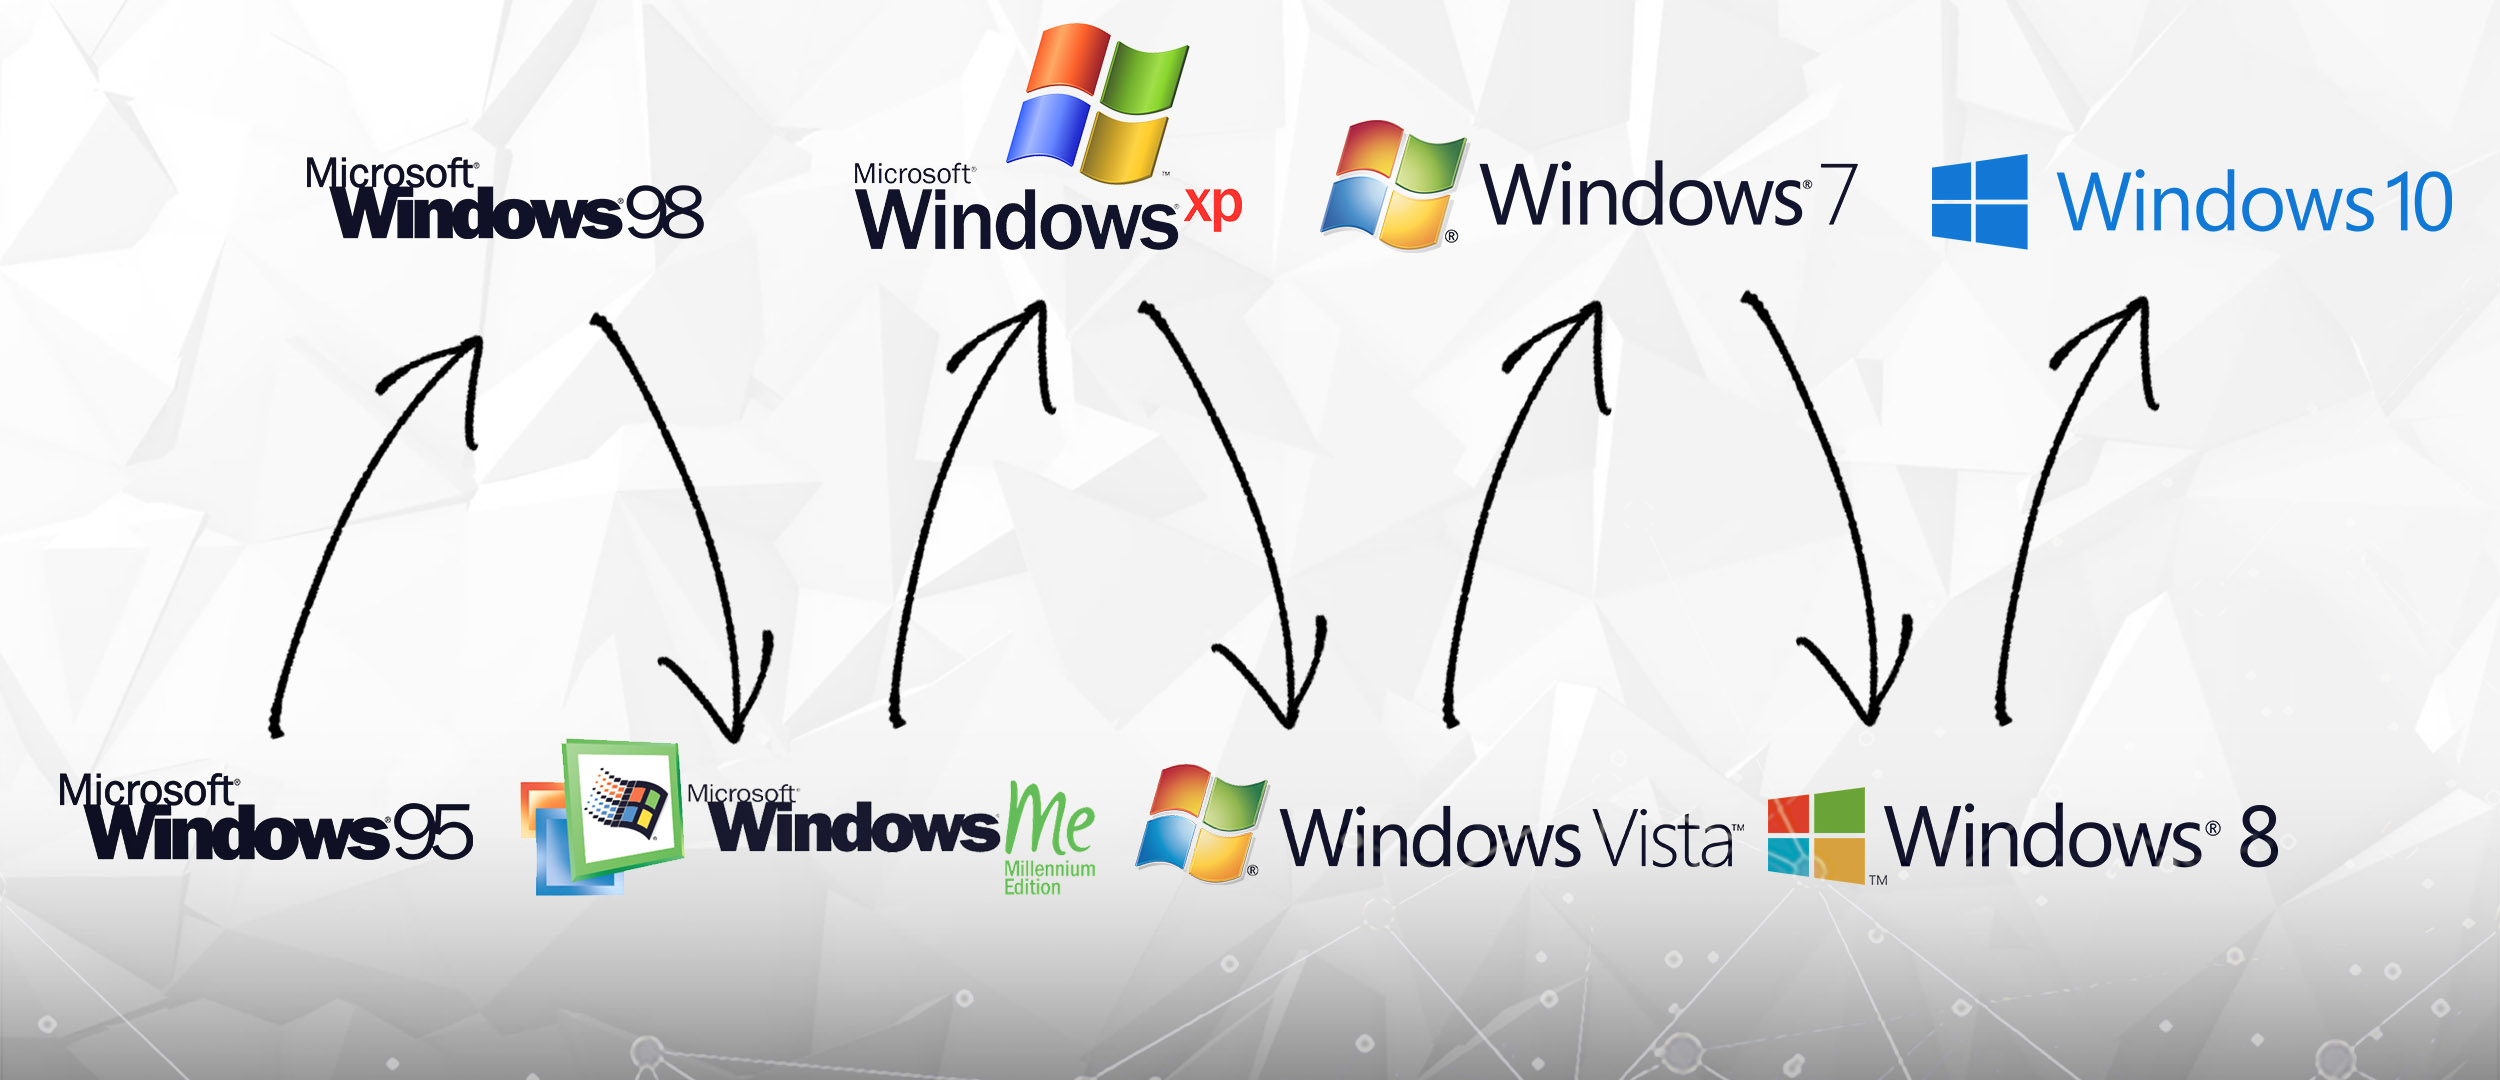 Windows historia